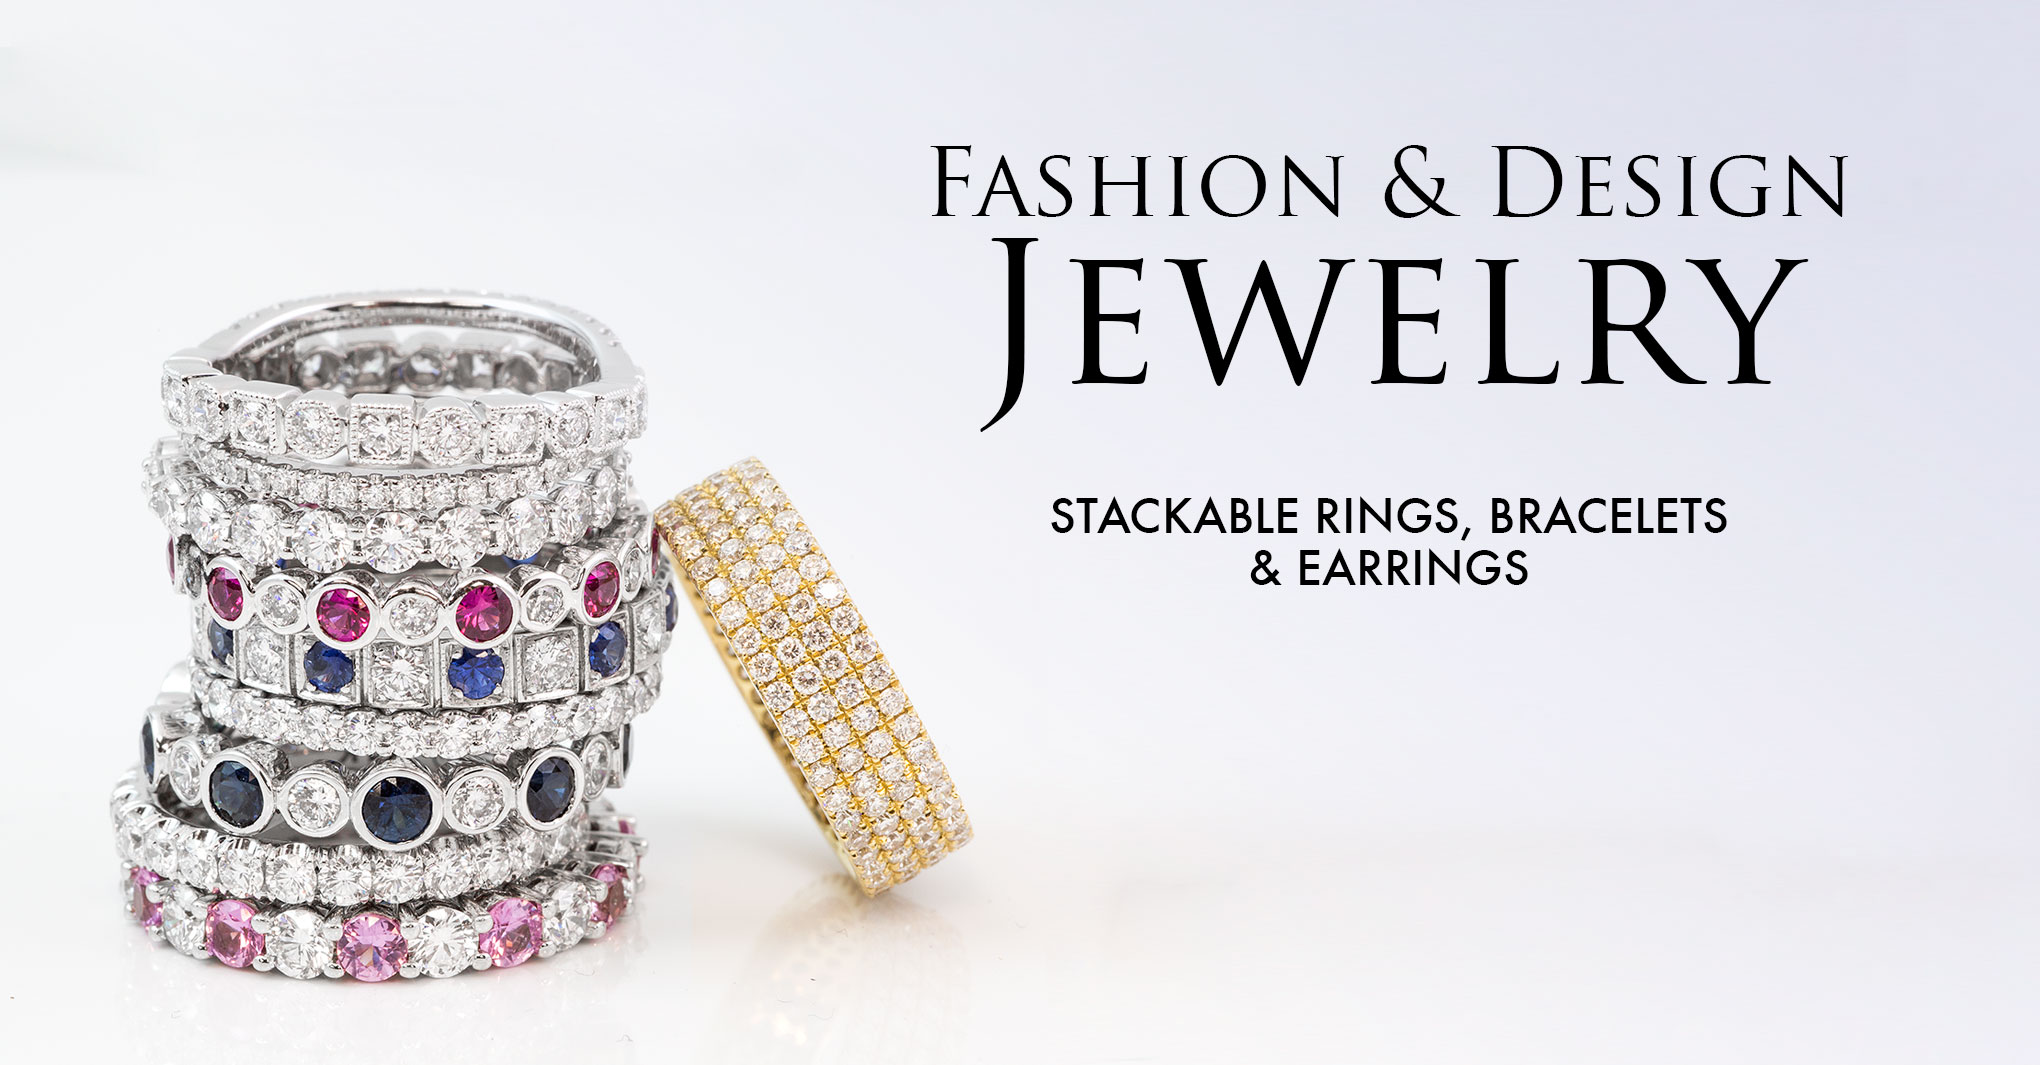 Fashion Jewelry Stackable Rings, Bracelets, Rings - 3804 Sepulveda Blvd, Torrance 90505